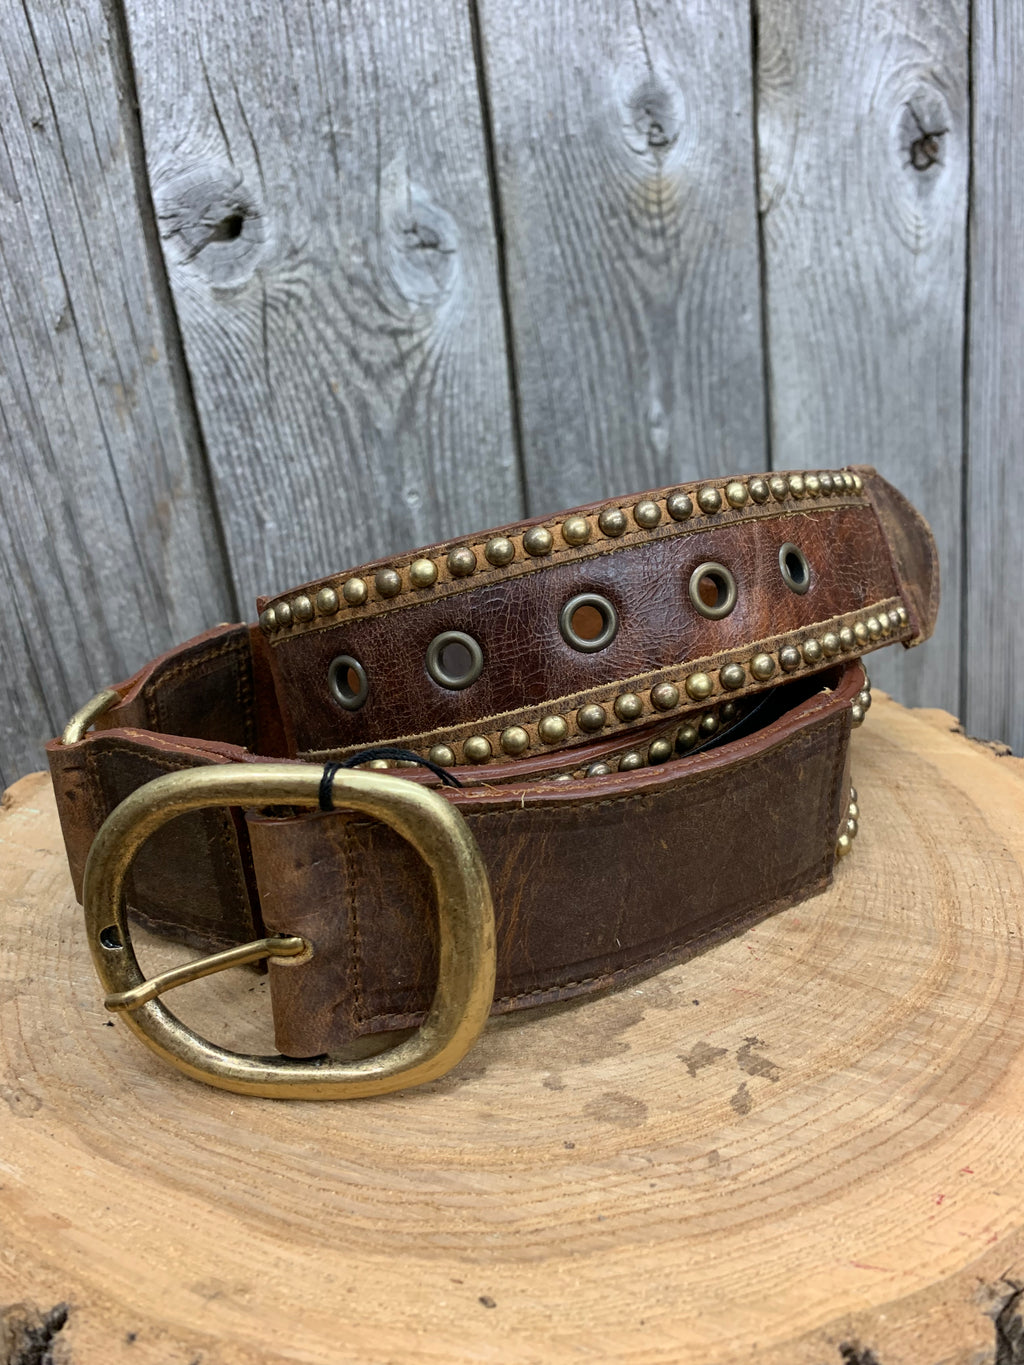 1948 LR Brown Leather Belt with Studs and Cognac Panel